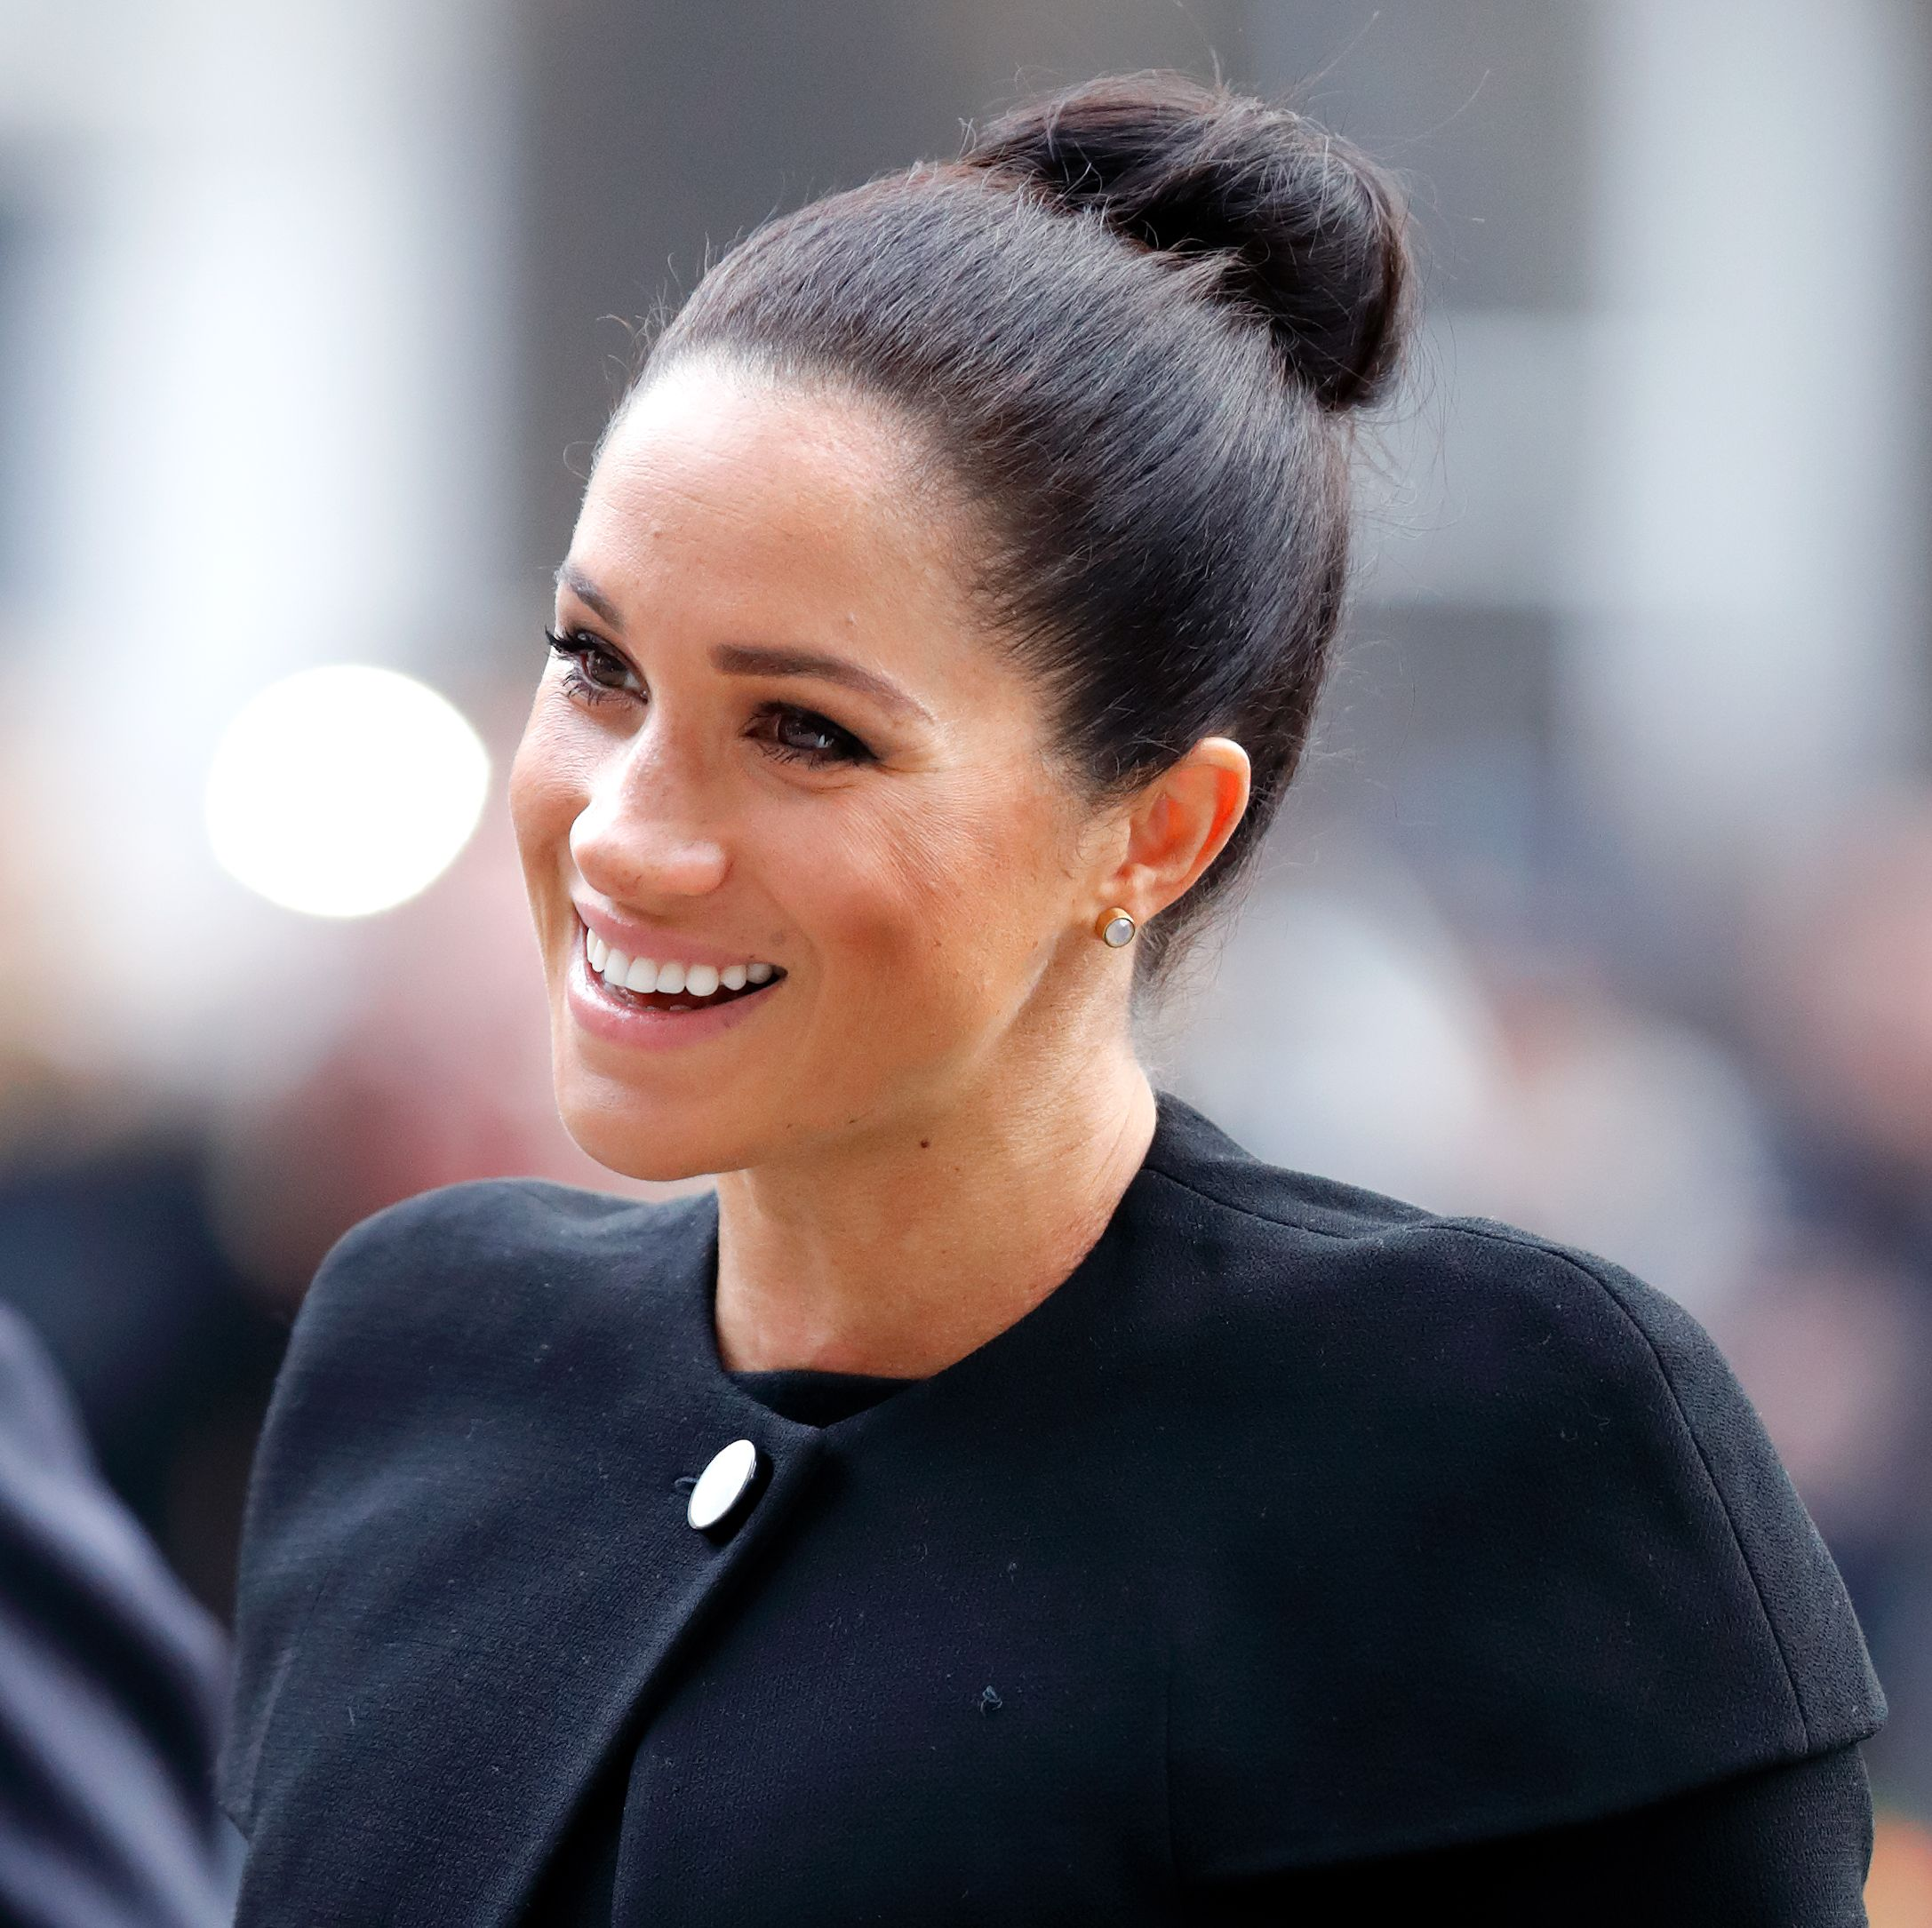 Meghan Markle is Celebrating Her Baby Shower in the Sweetest Way With BFF Jessica Mulroney in New York